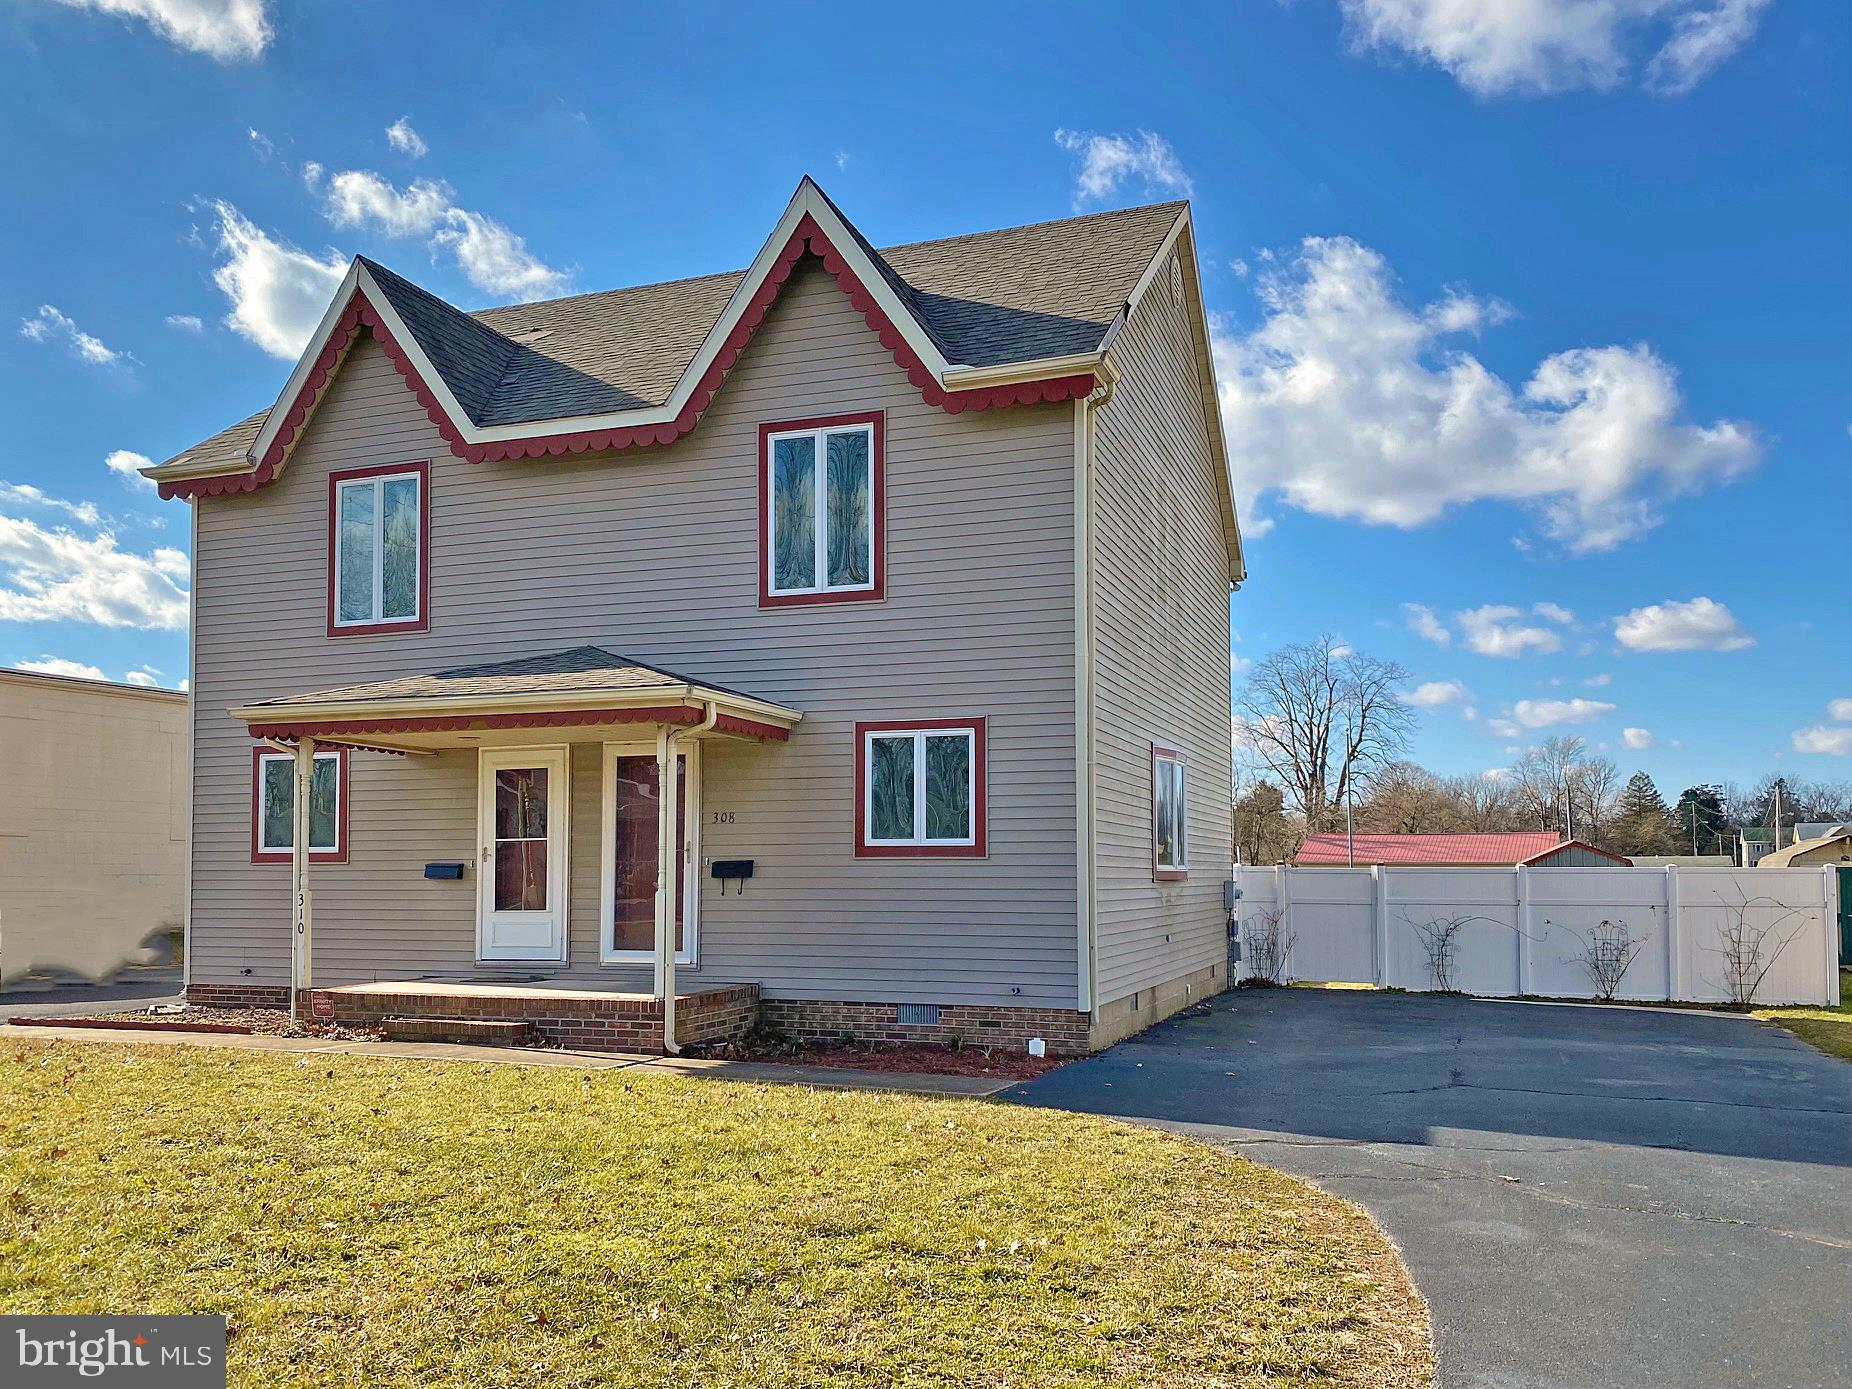 Great semi-detached, twin home features a nice front yard, an oversized parking area & a fenced back